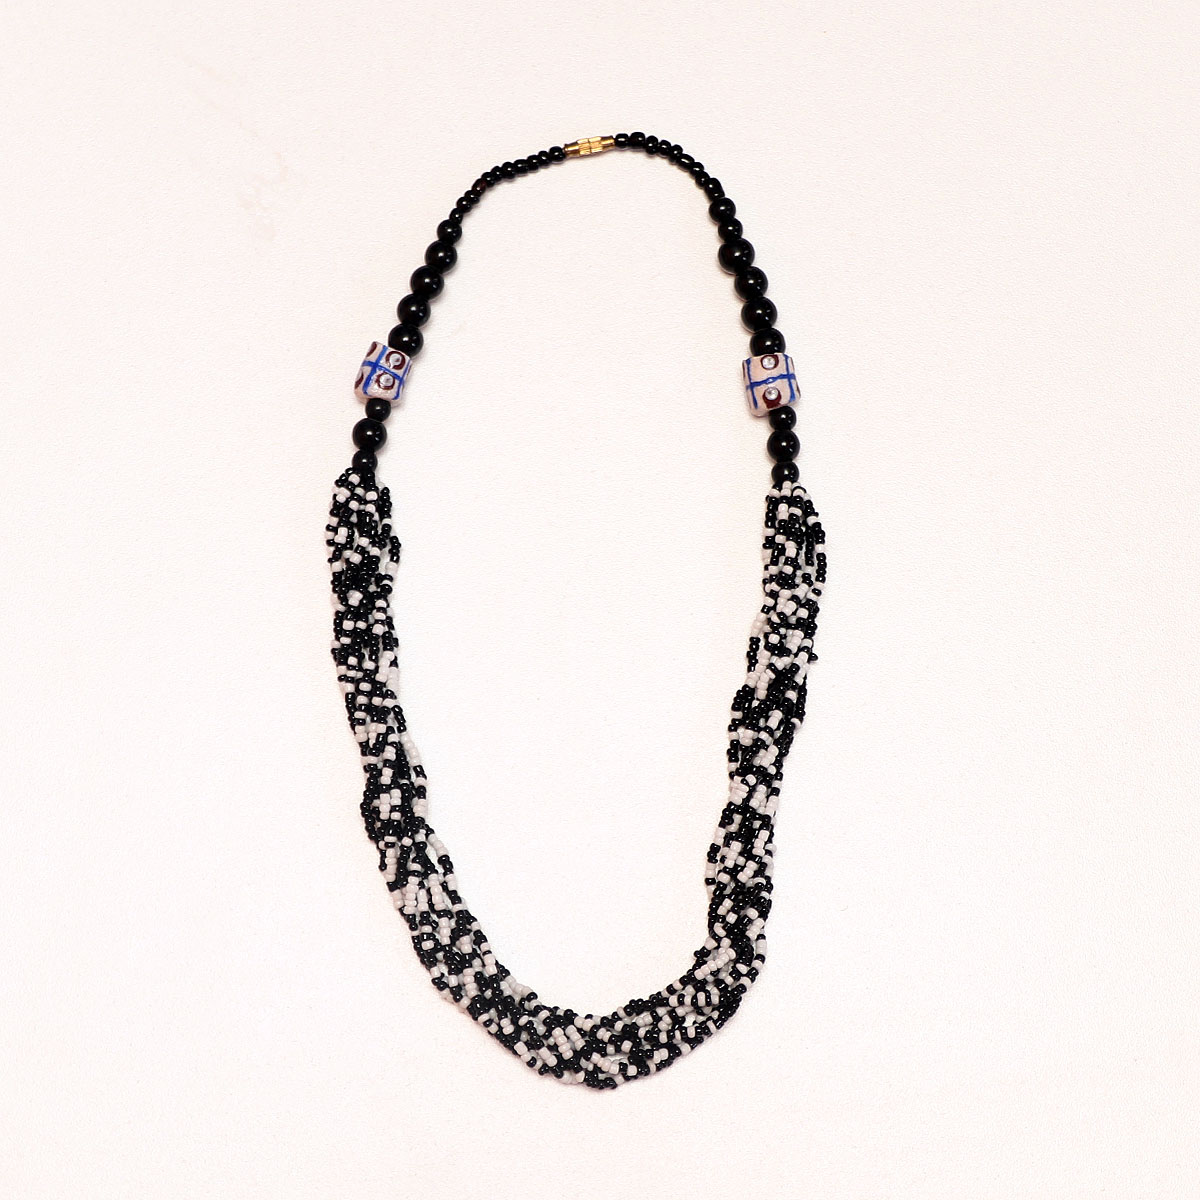 Black & White African Beaded Necklace